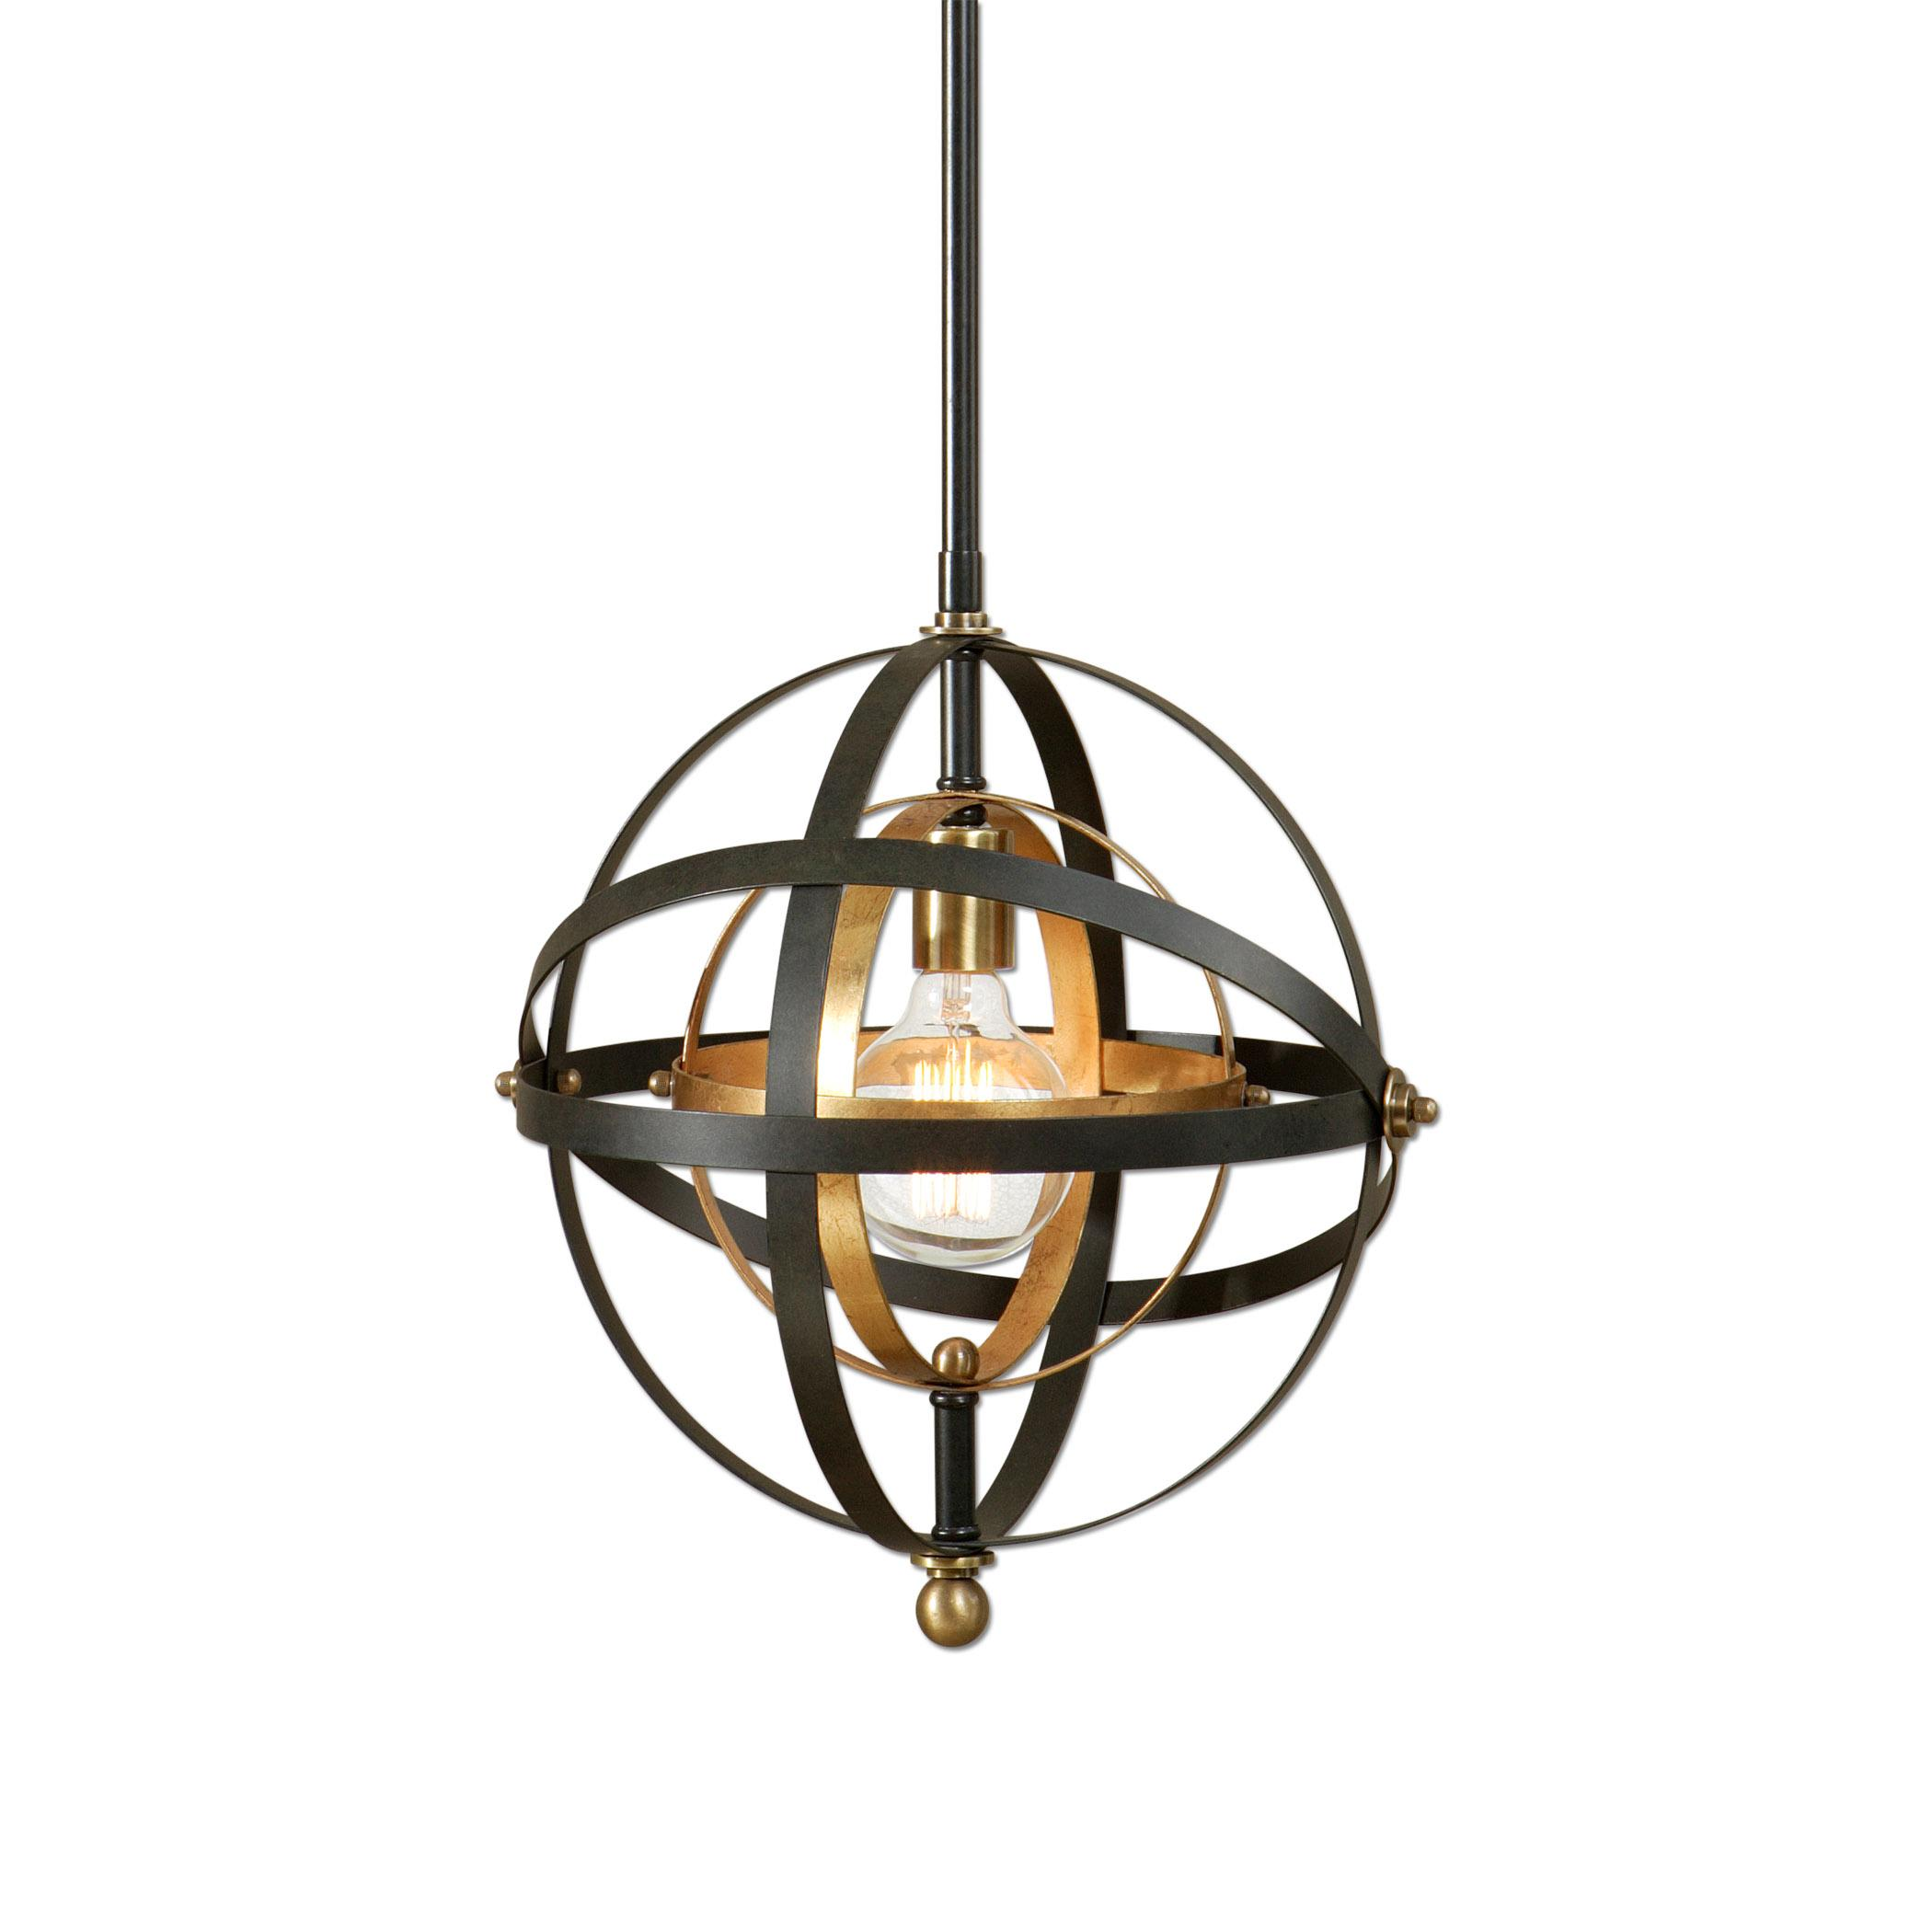 Uttermost Lighting Fixtures Rondure 1 Light Sphere Mini Pendant - Item Number: 22039